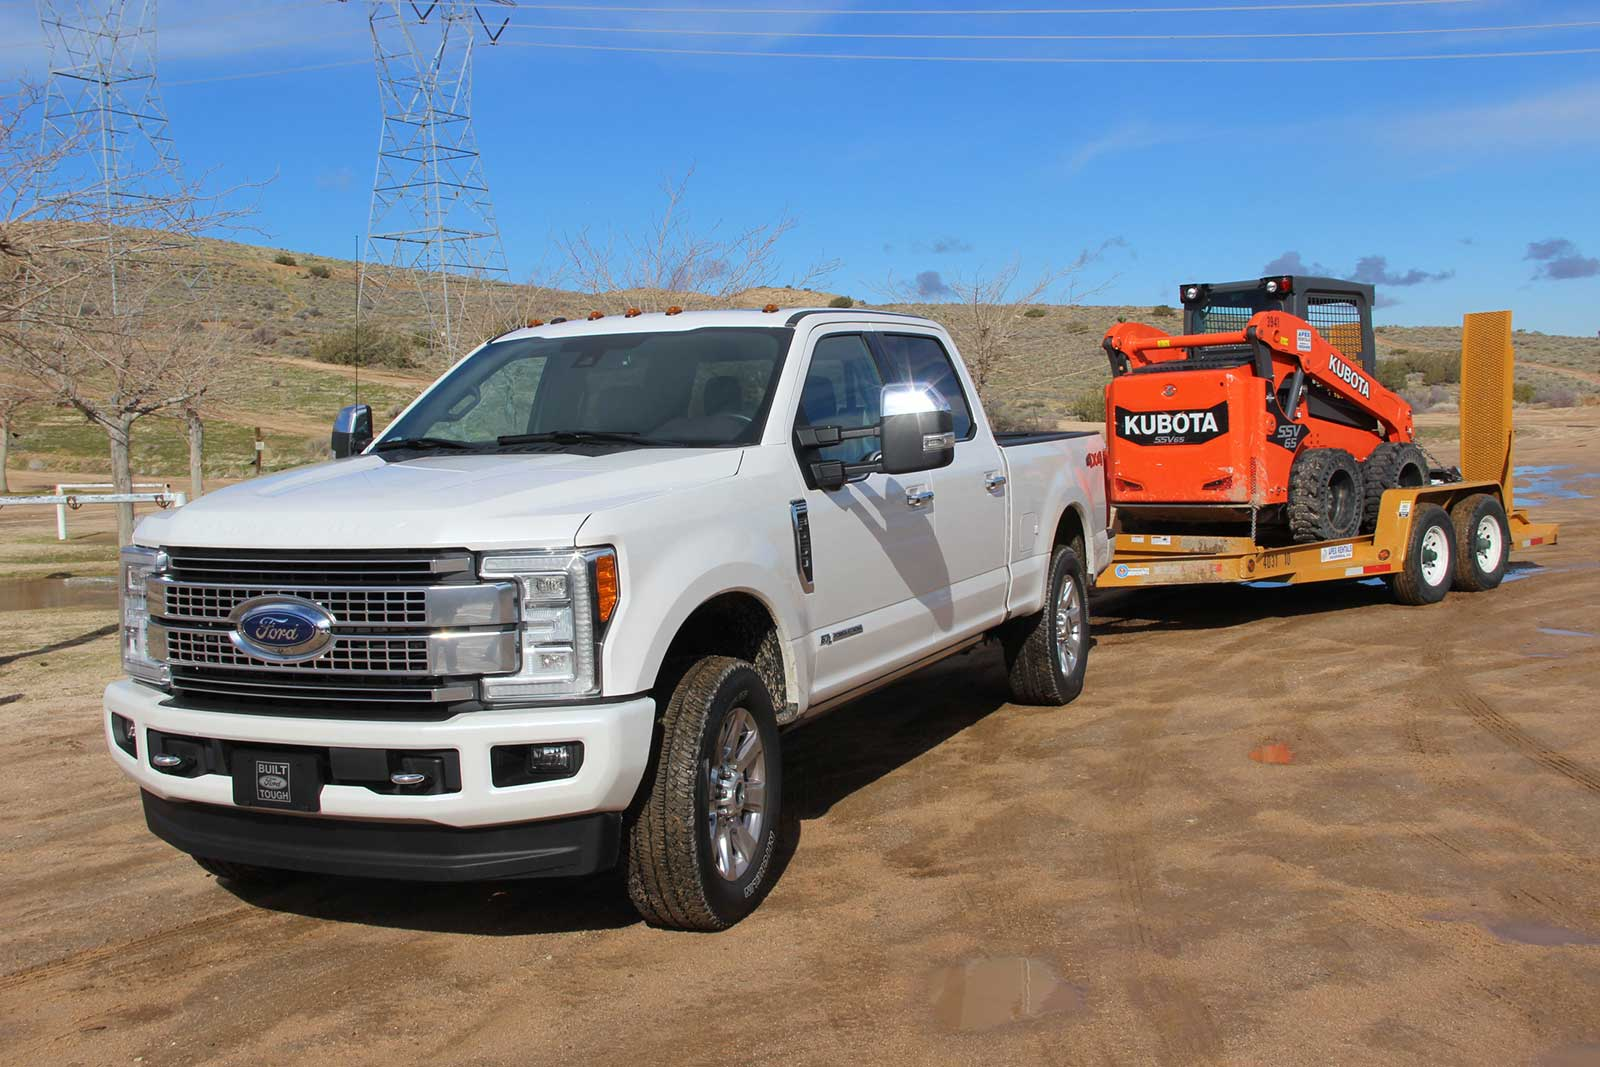 2017 Ford F 250 Super Duty Autoguide Com Truck Of The Year Contender Autoguide Com